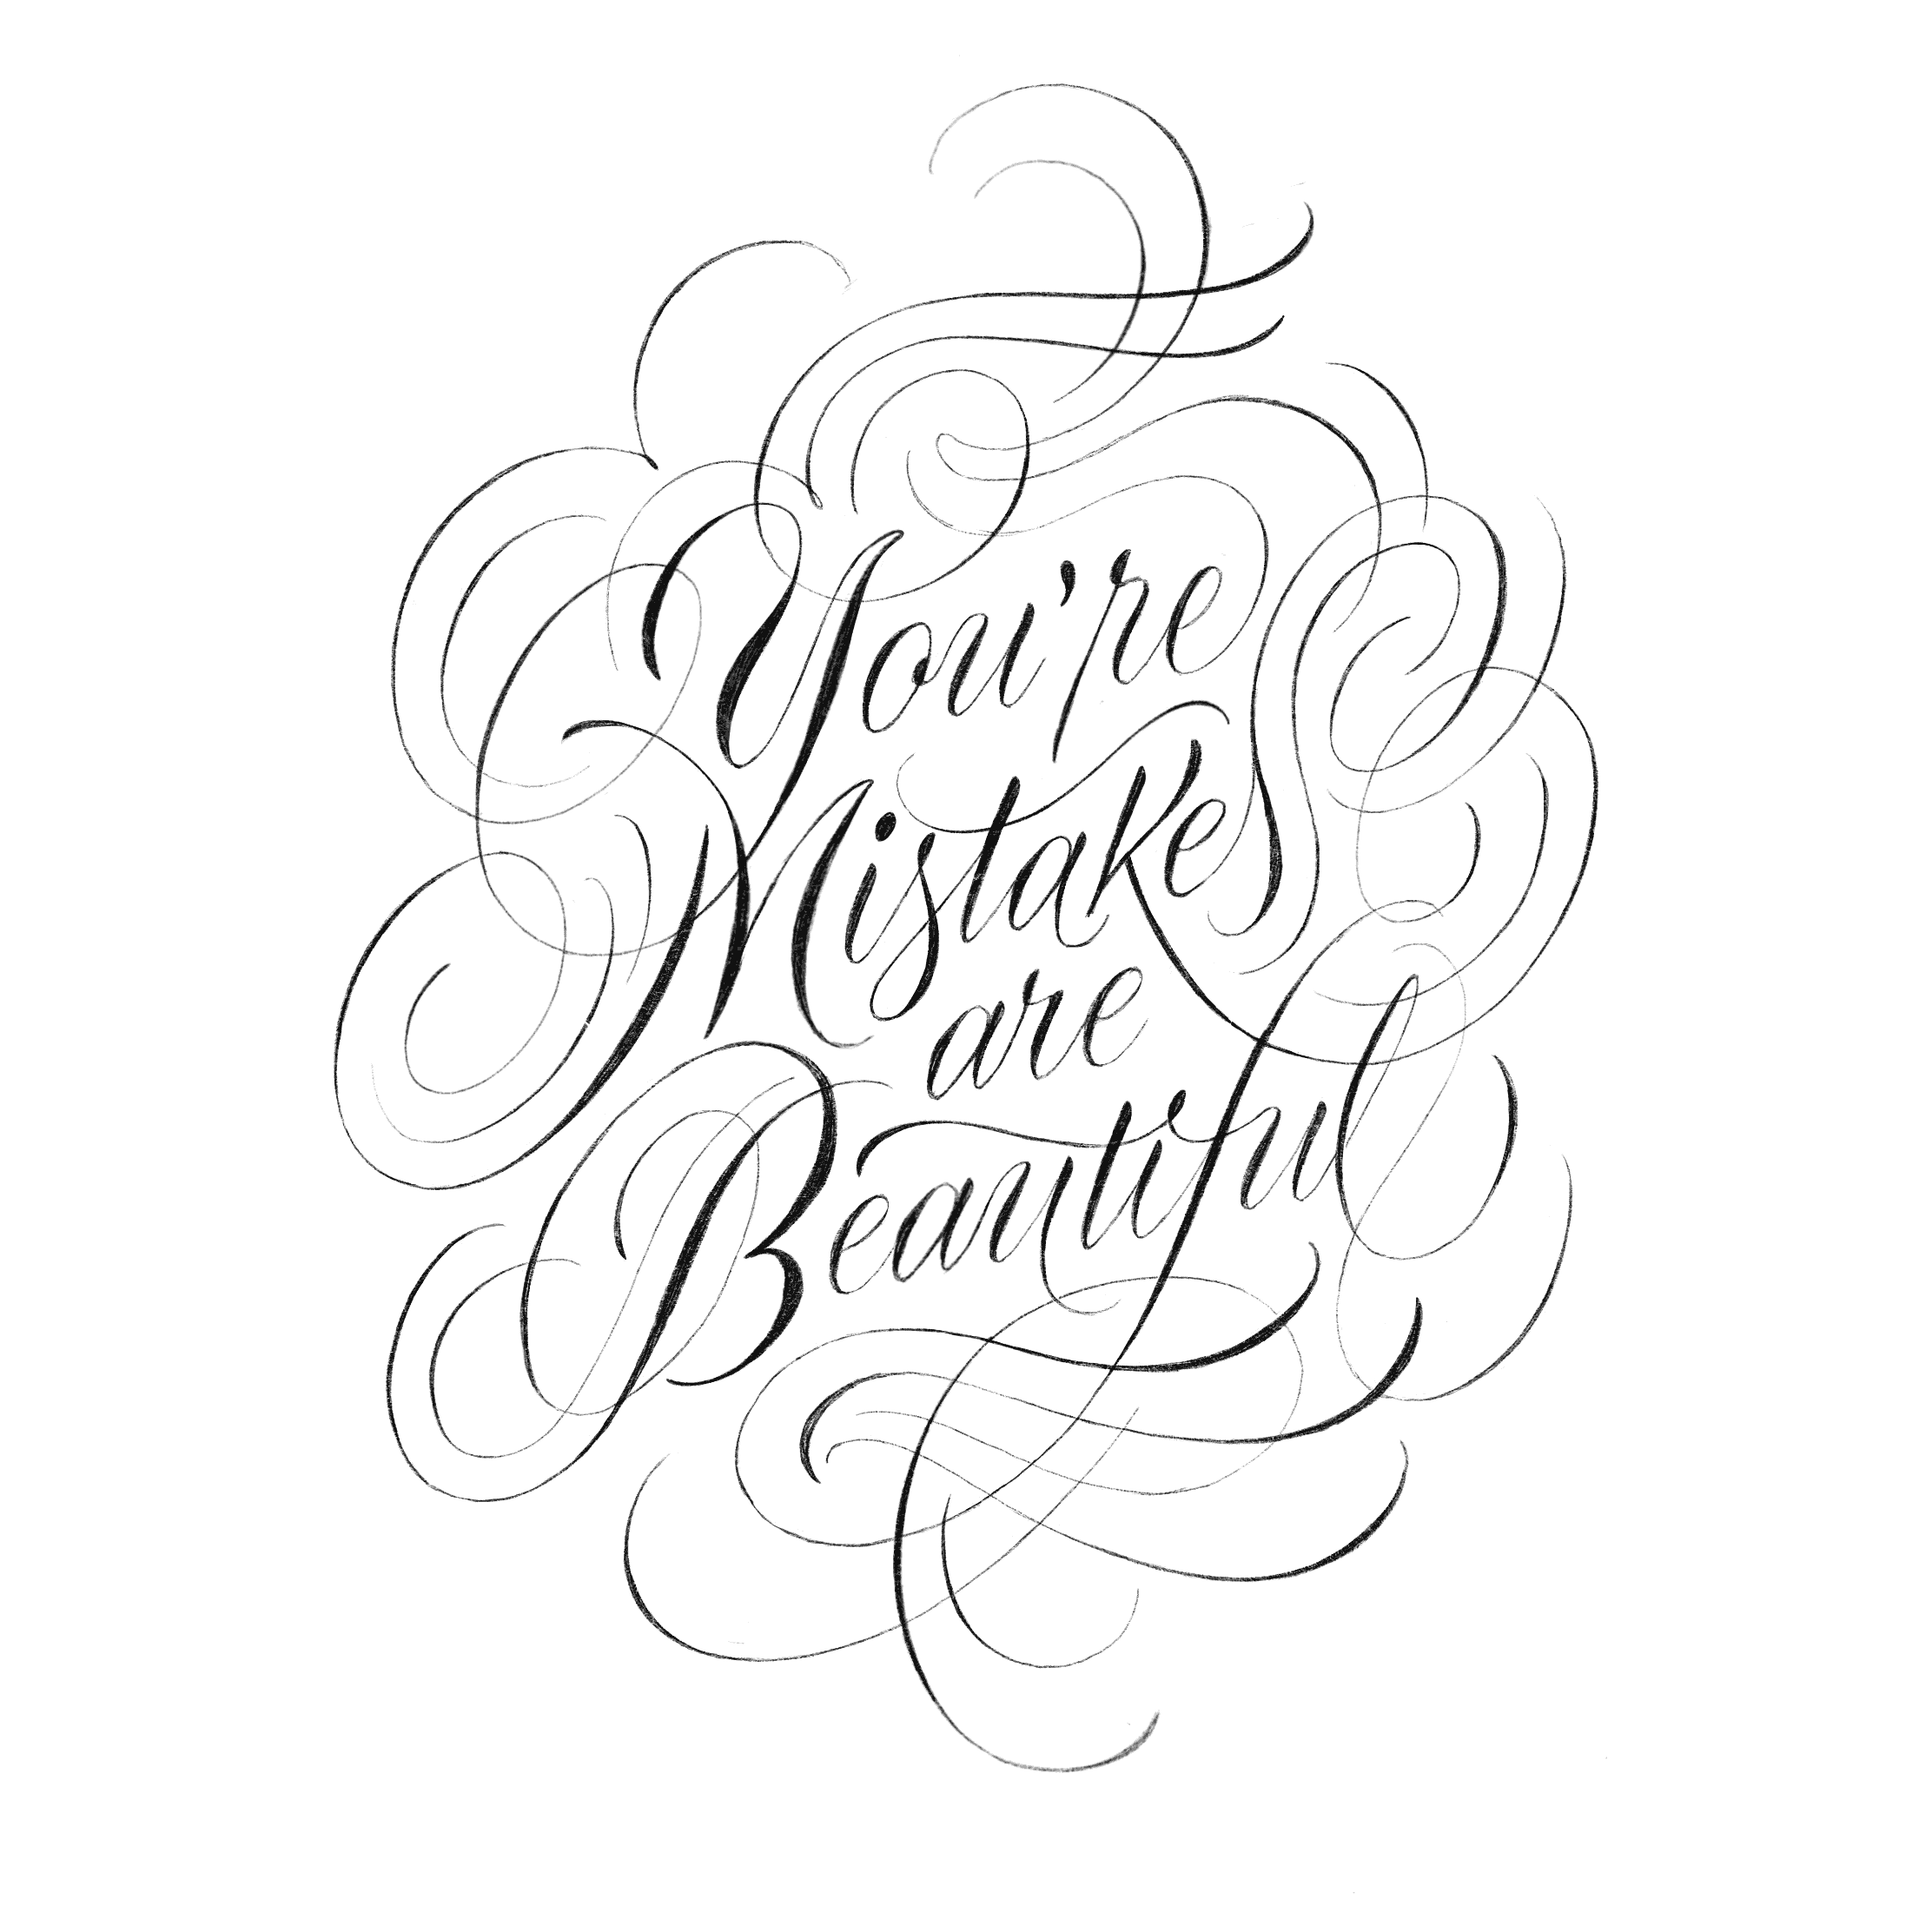 You're Mistakes are Beautiful Poster by Dan Forster. Initial sketch.